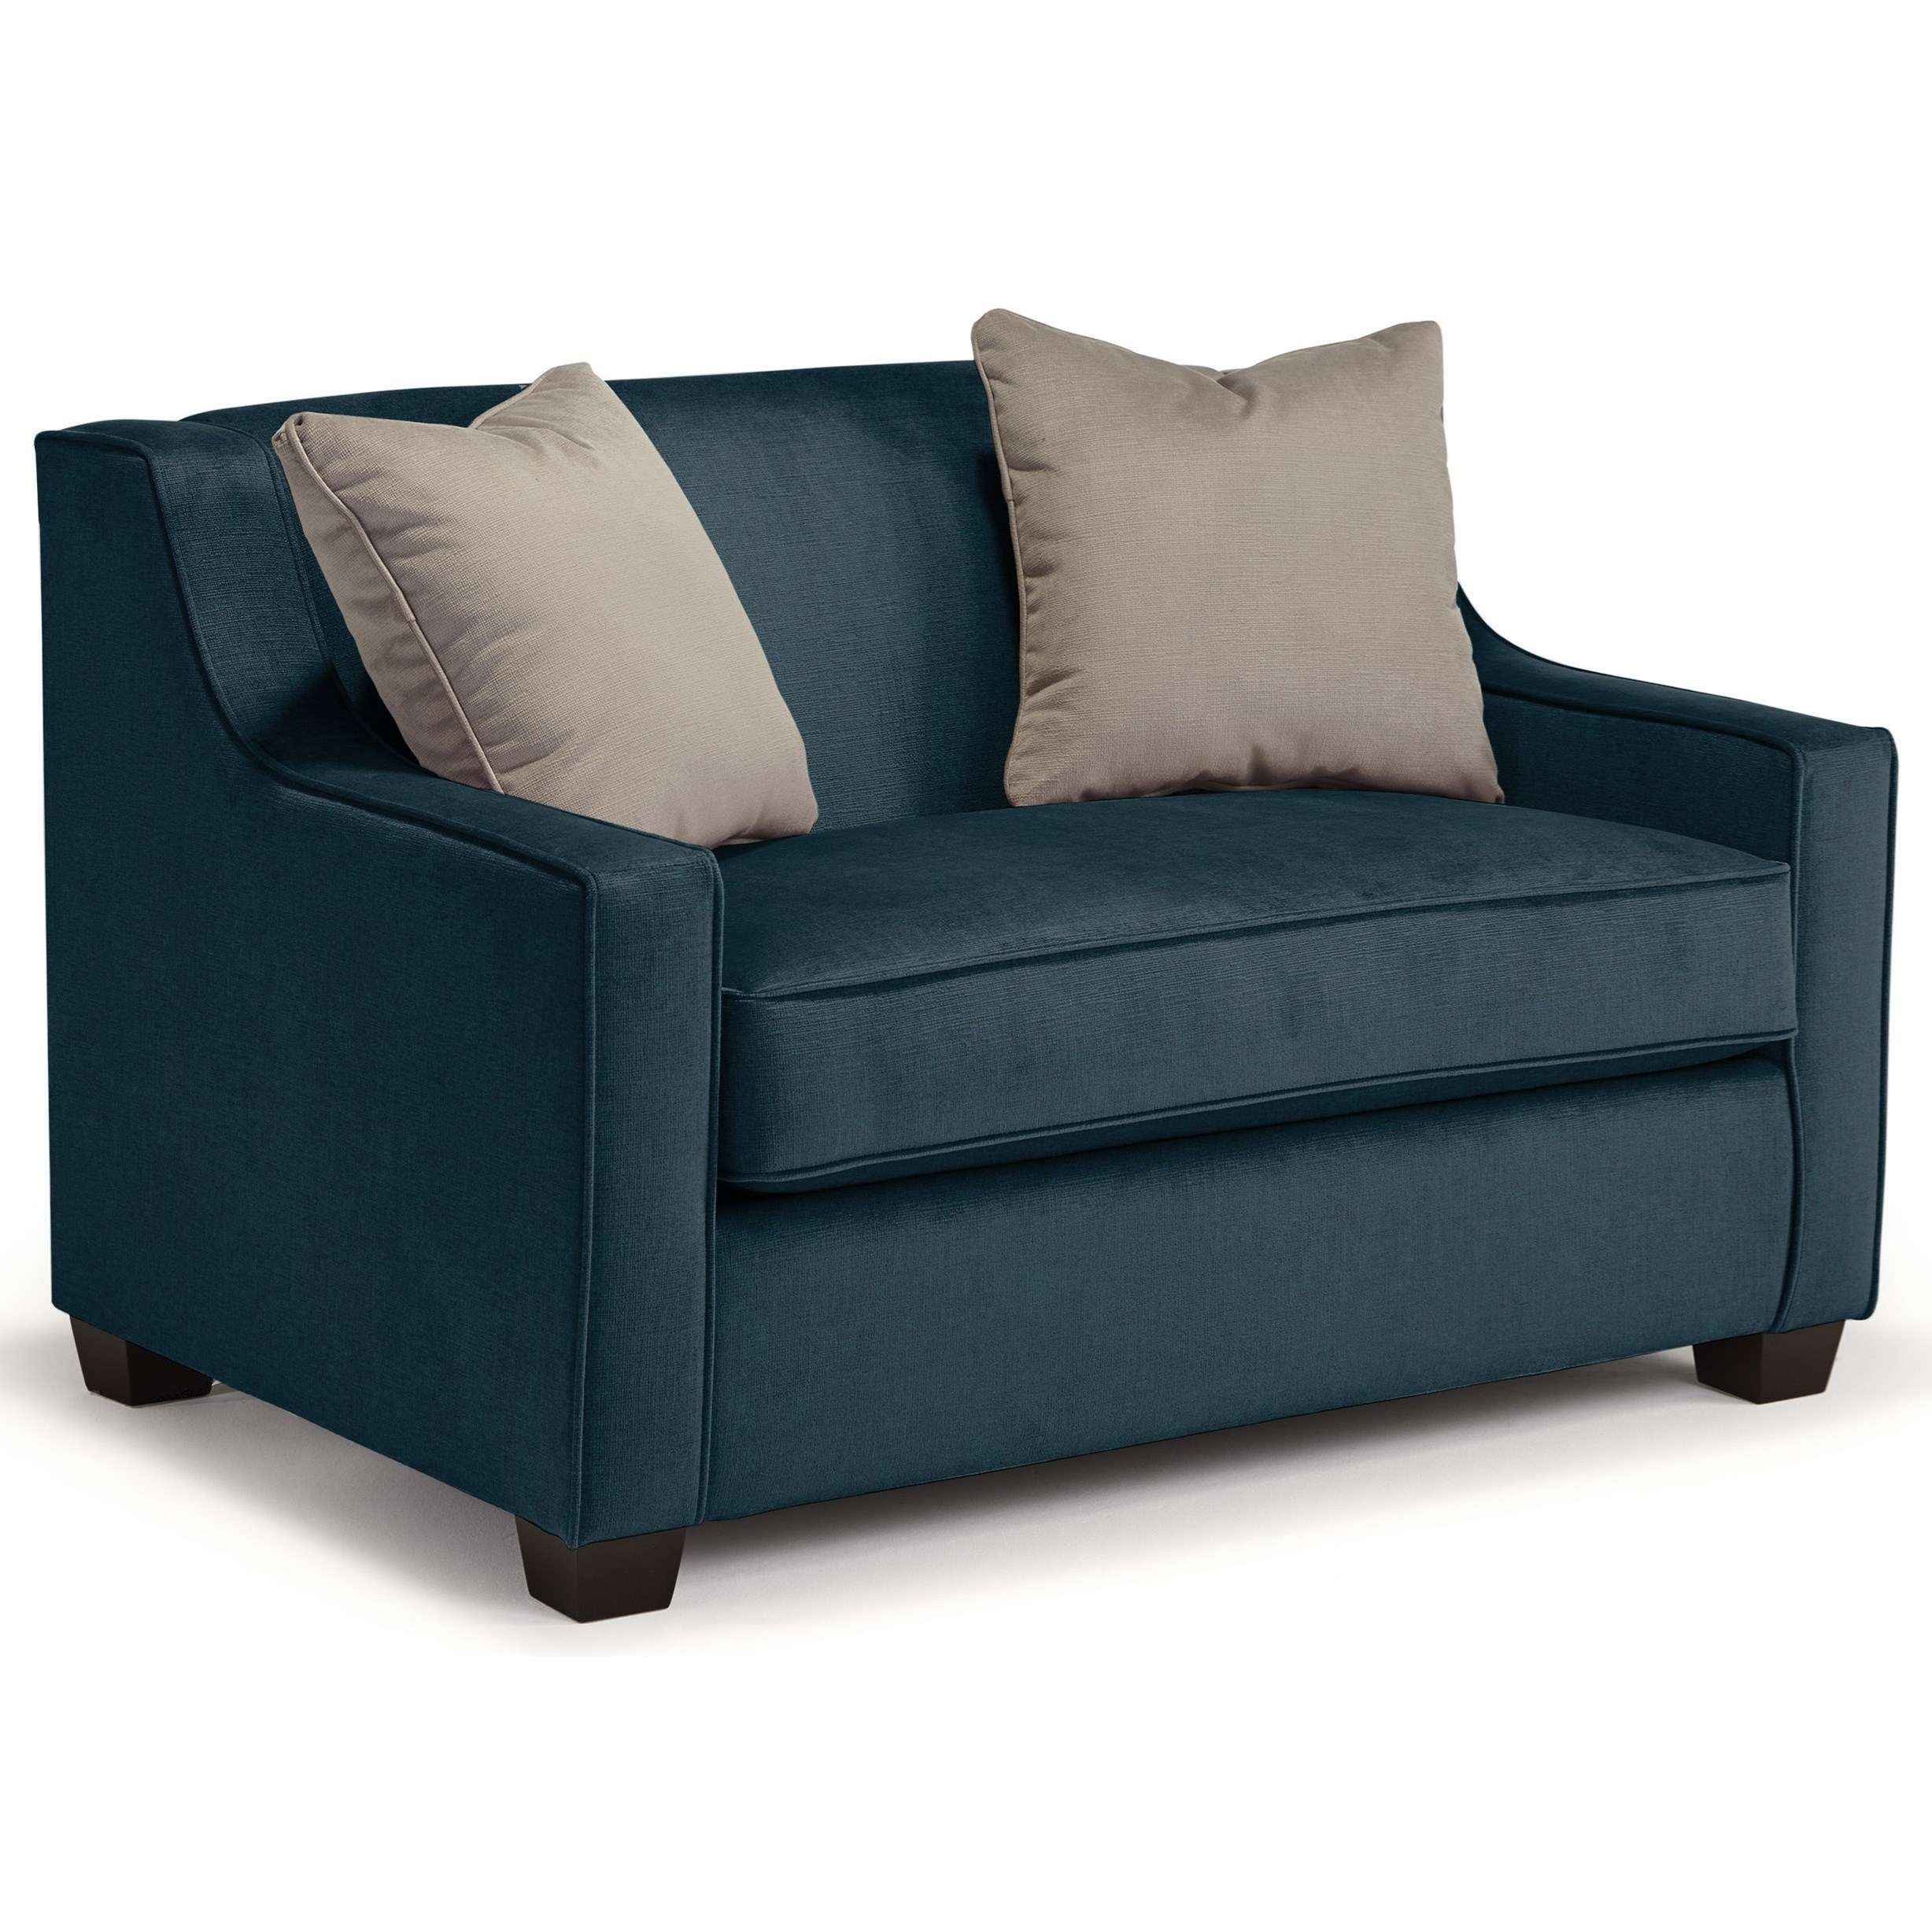 Marinette Twin Air Dream Sleeper Chair by Best Home Furnishings at Lapeer Furniture & Mattress Center